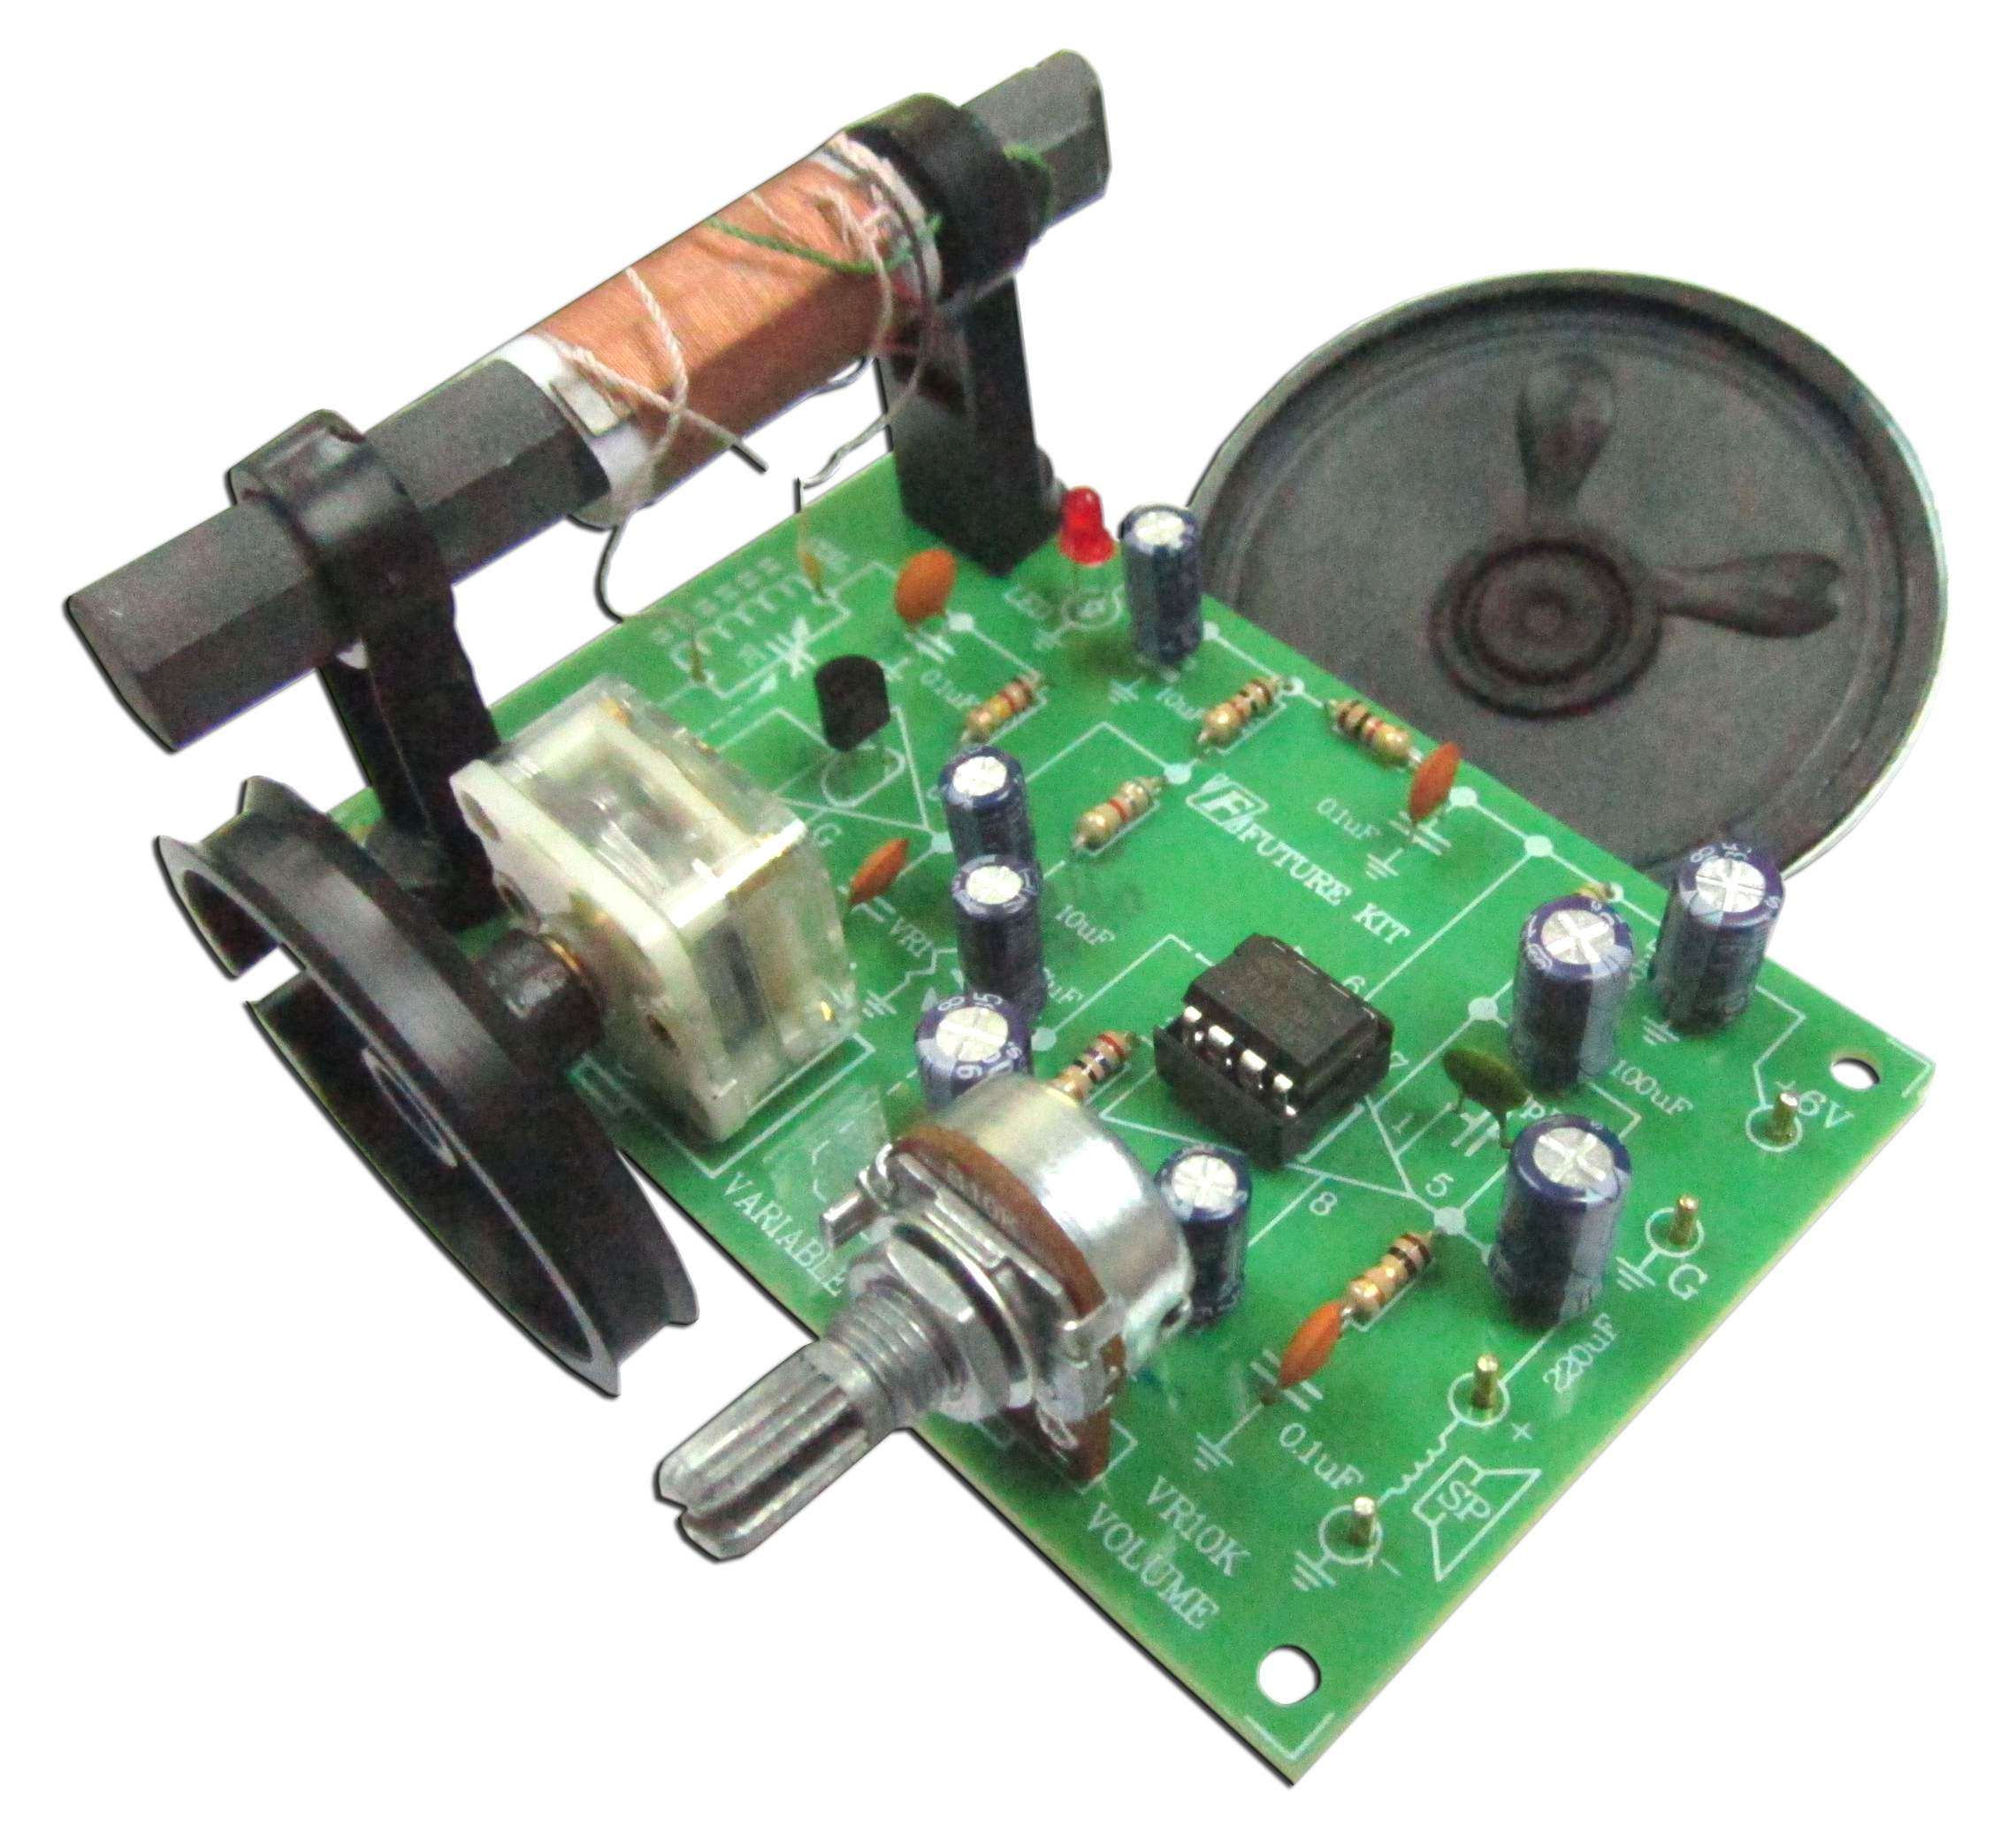 Buy Am Radio Reciever Ic Experiment Board Assembled At The Right Where To Circuit Boards Home